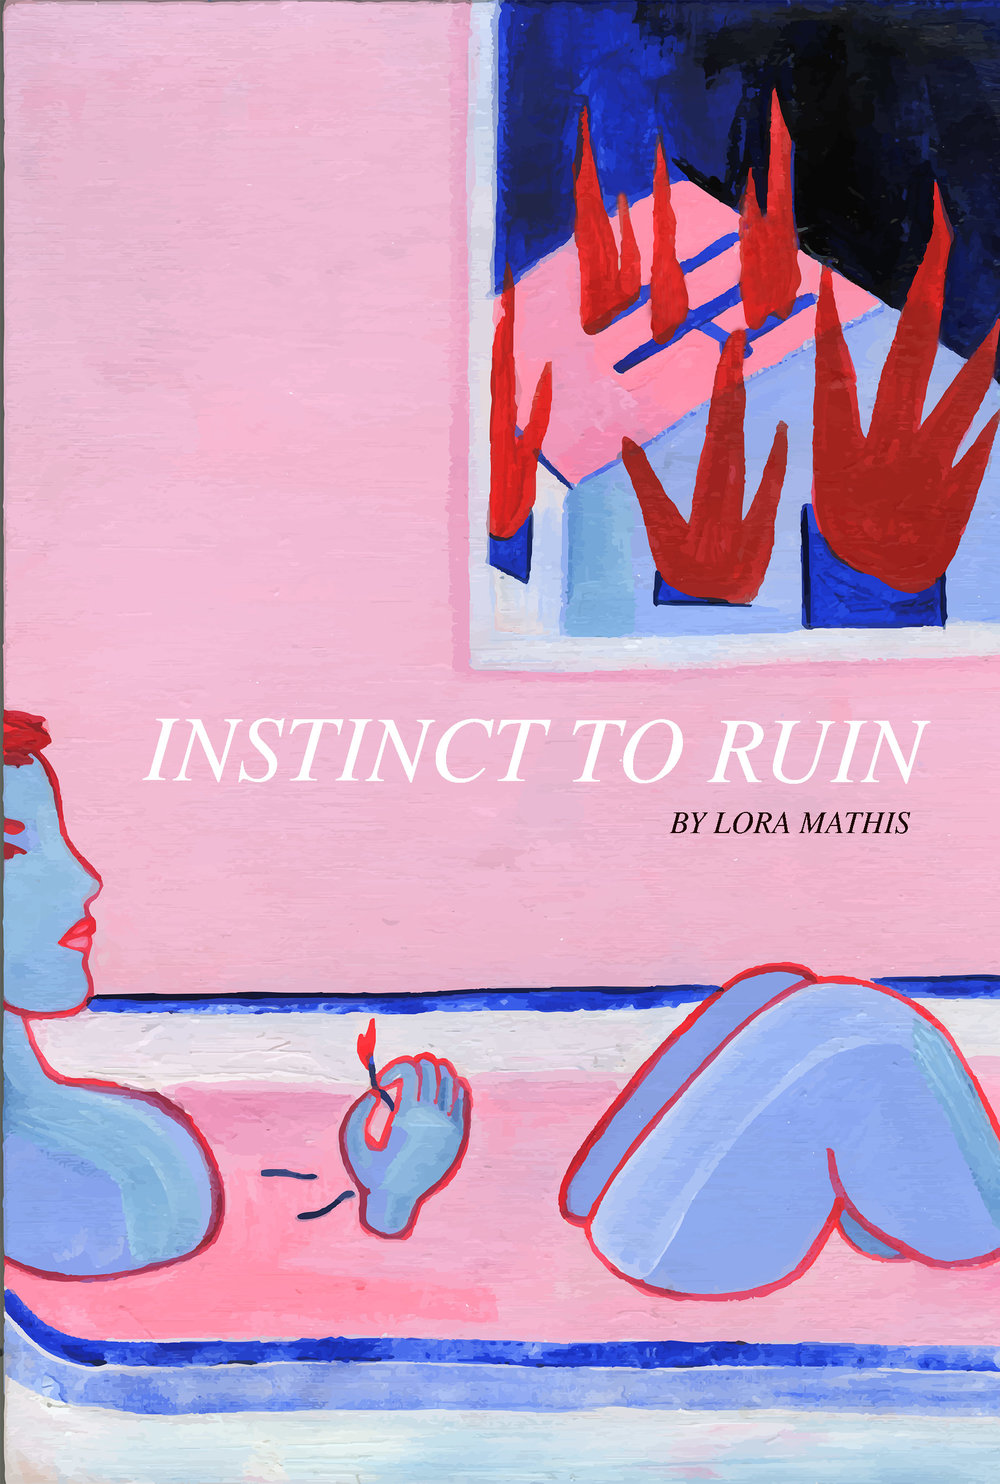 instinct to ruin-cover.jpg